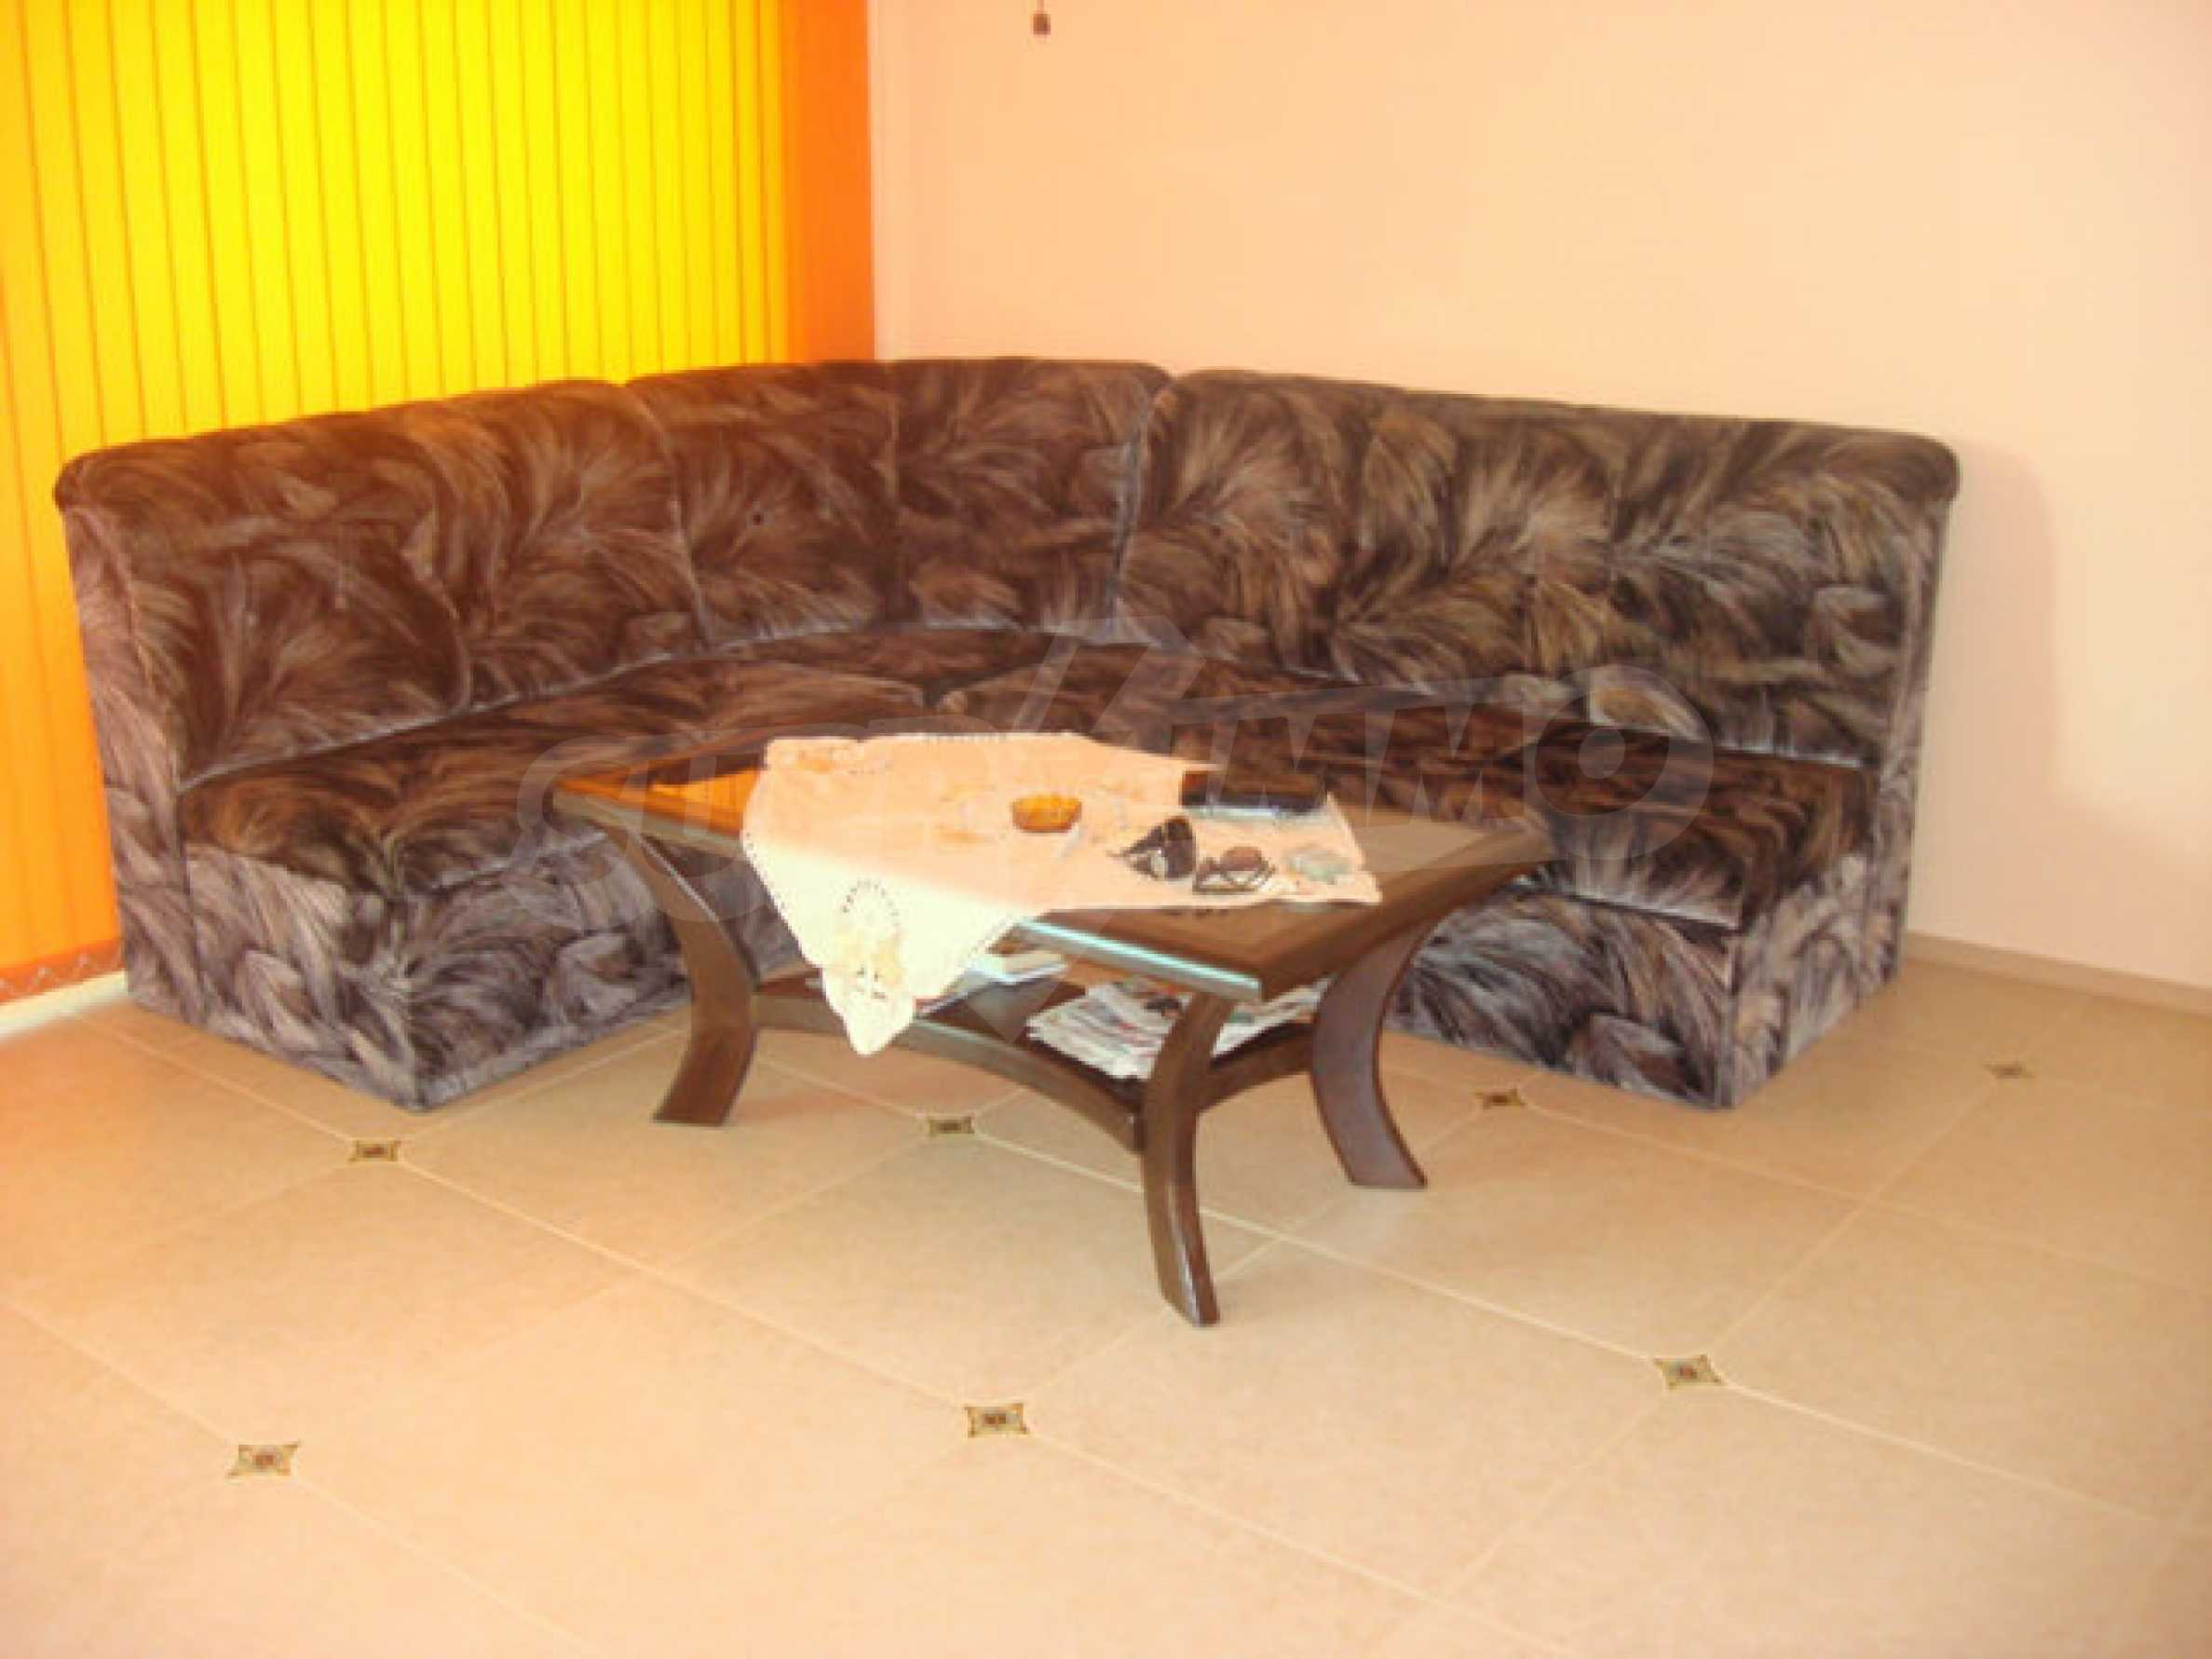 House for sale in Topola village 10